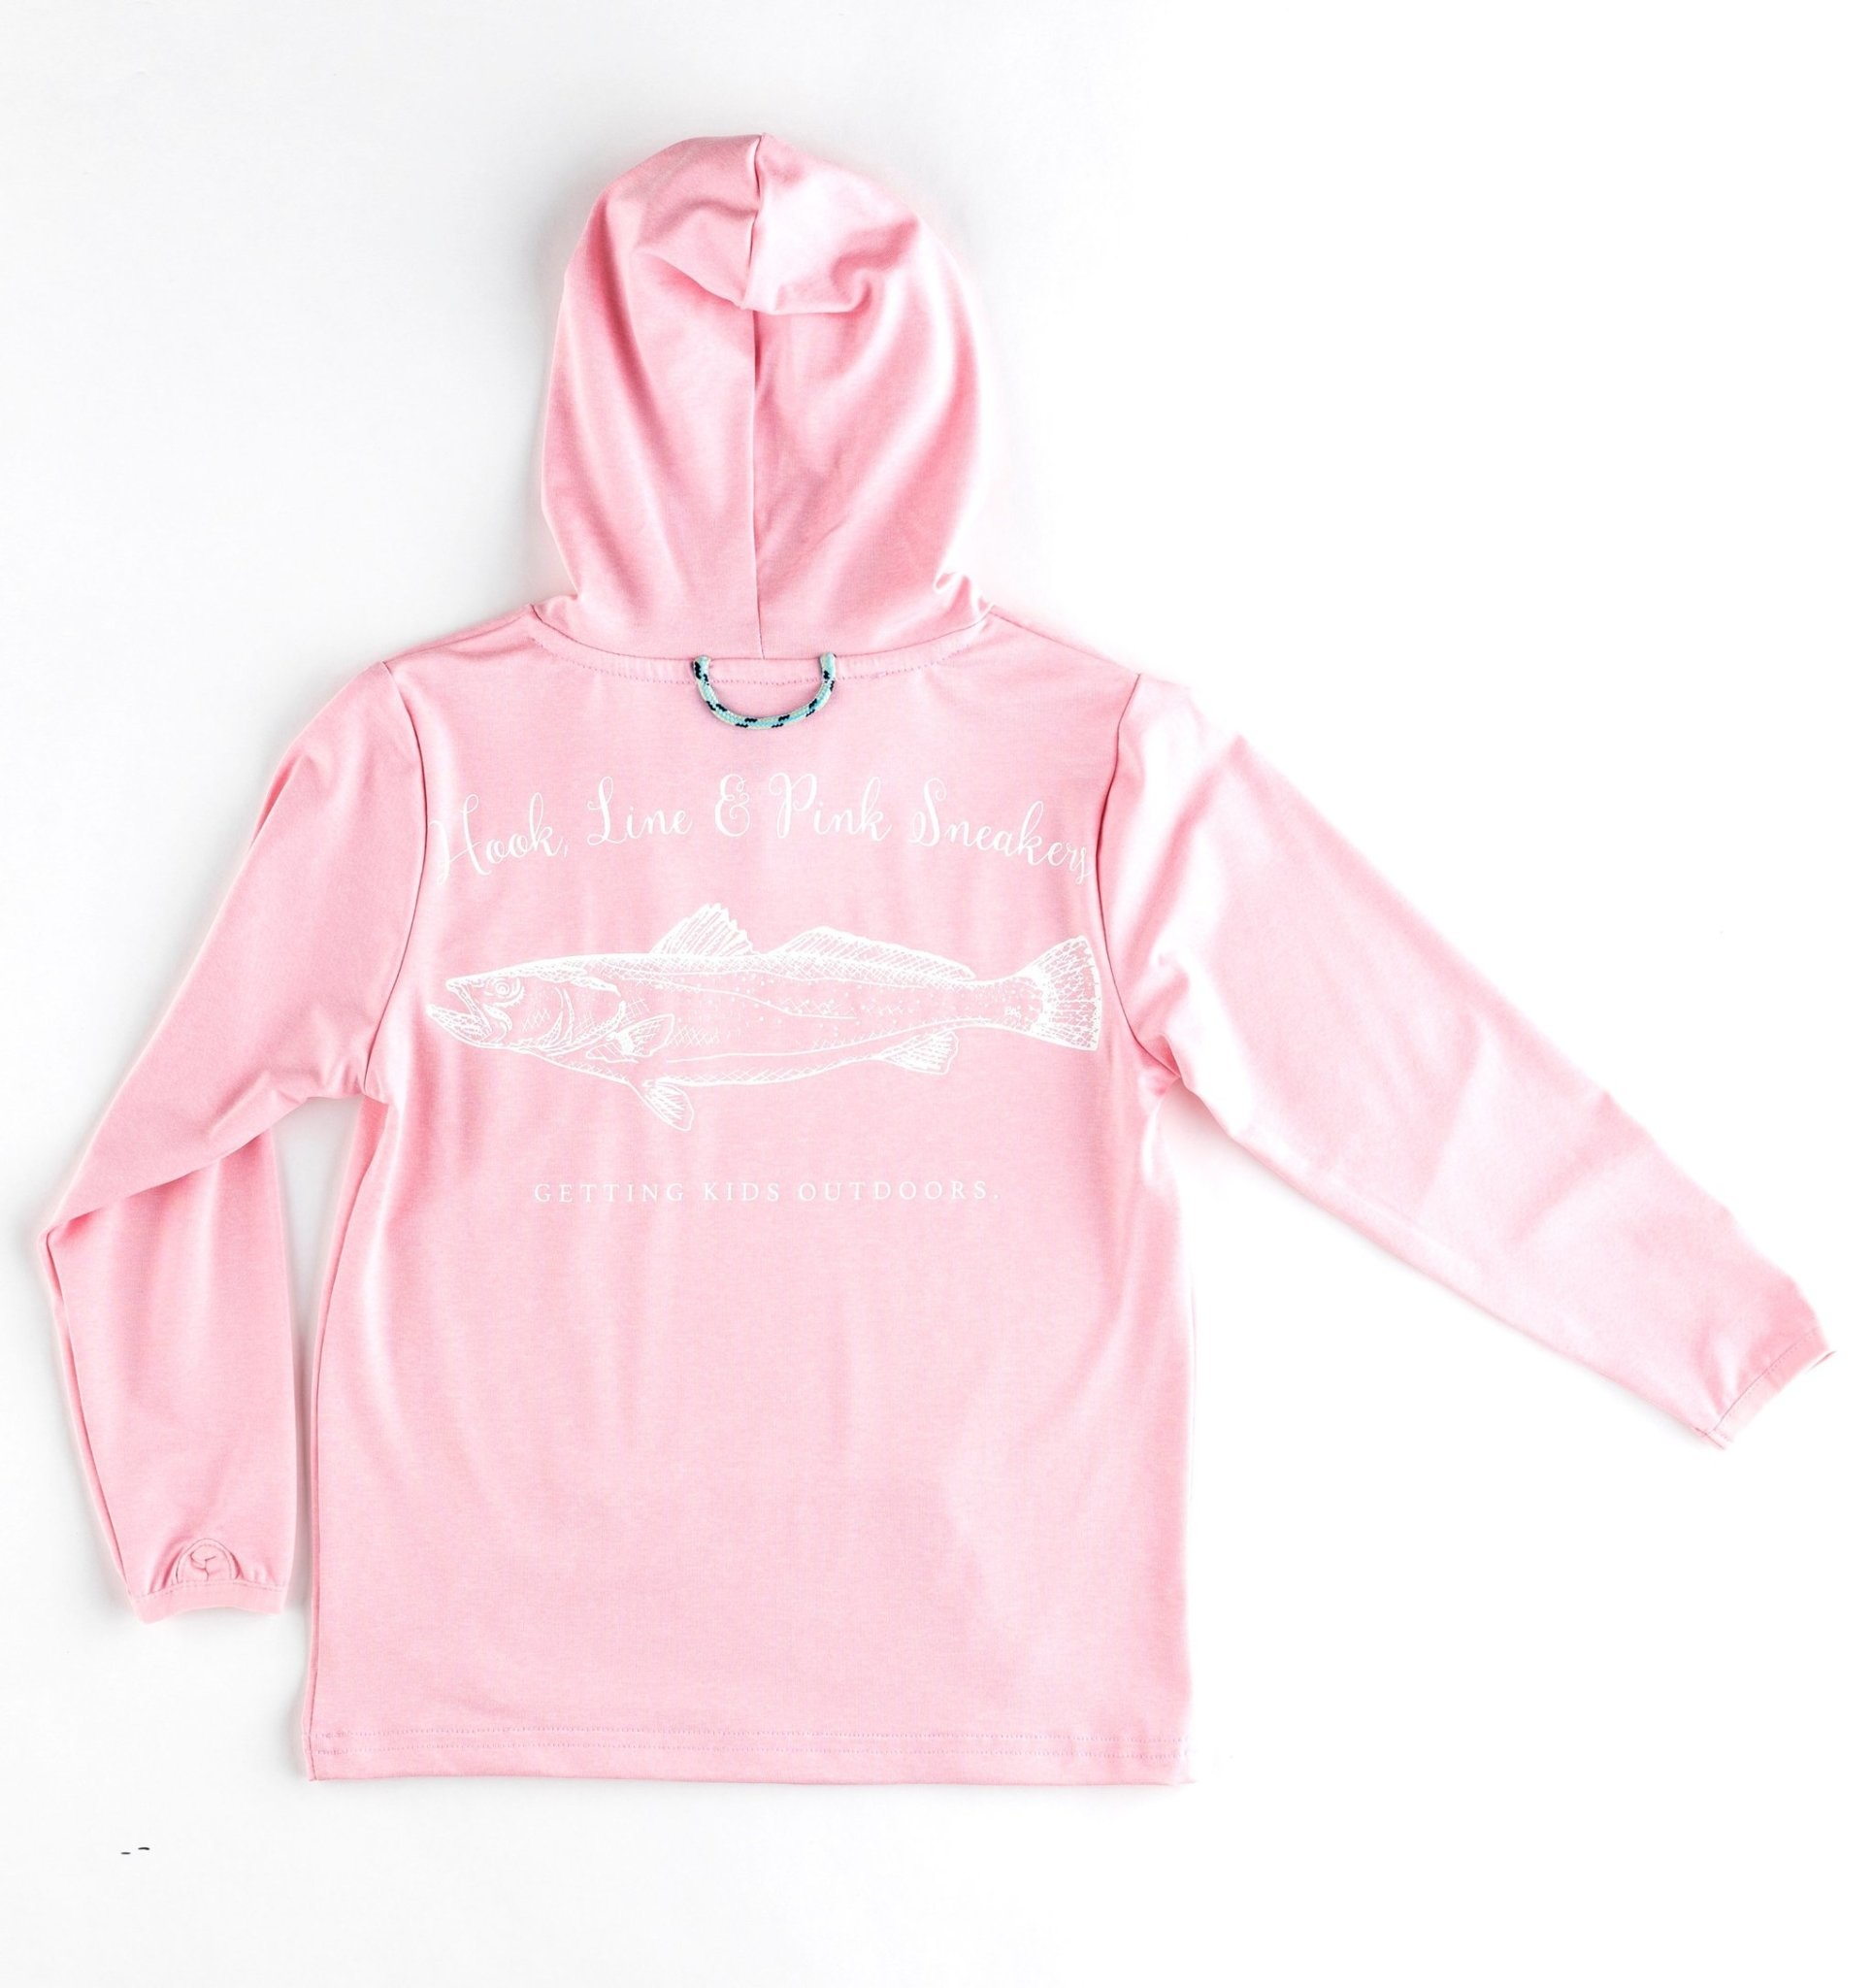 Prodoh Prodoh Performance L/S Hooded Tee